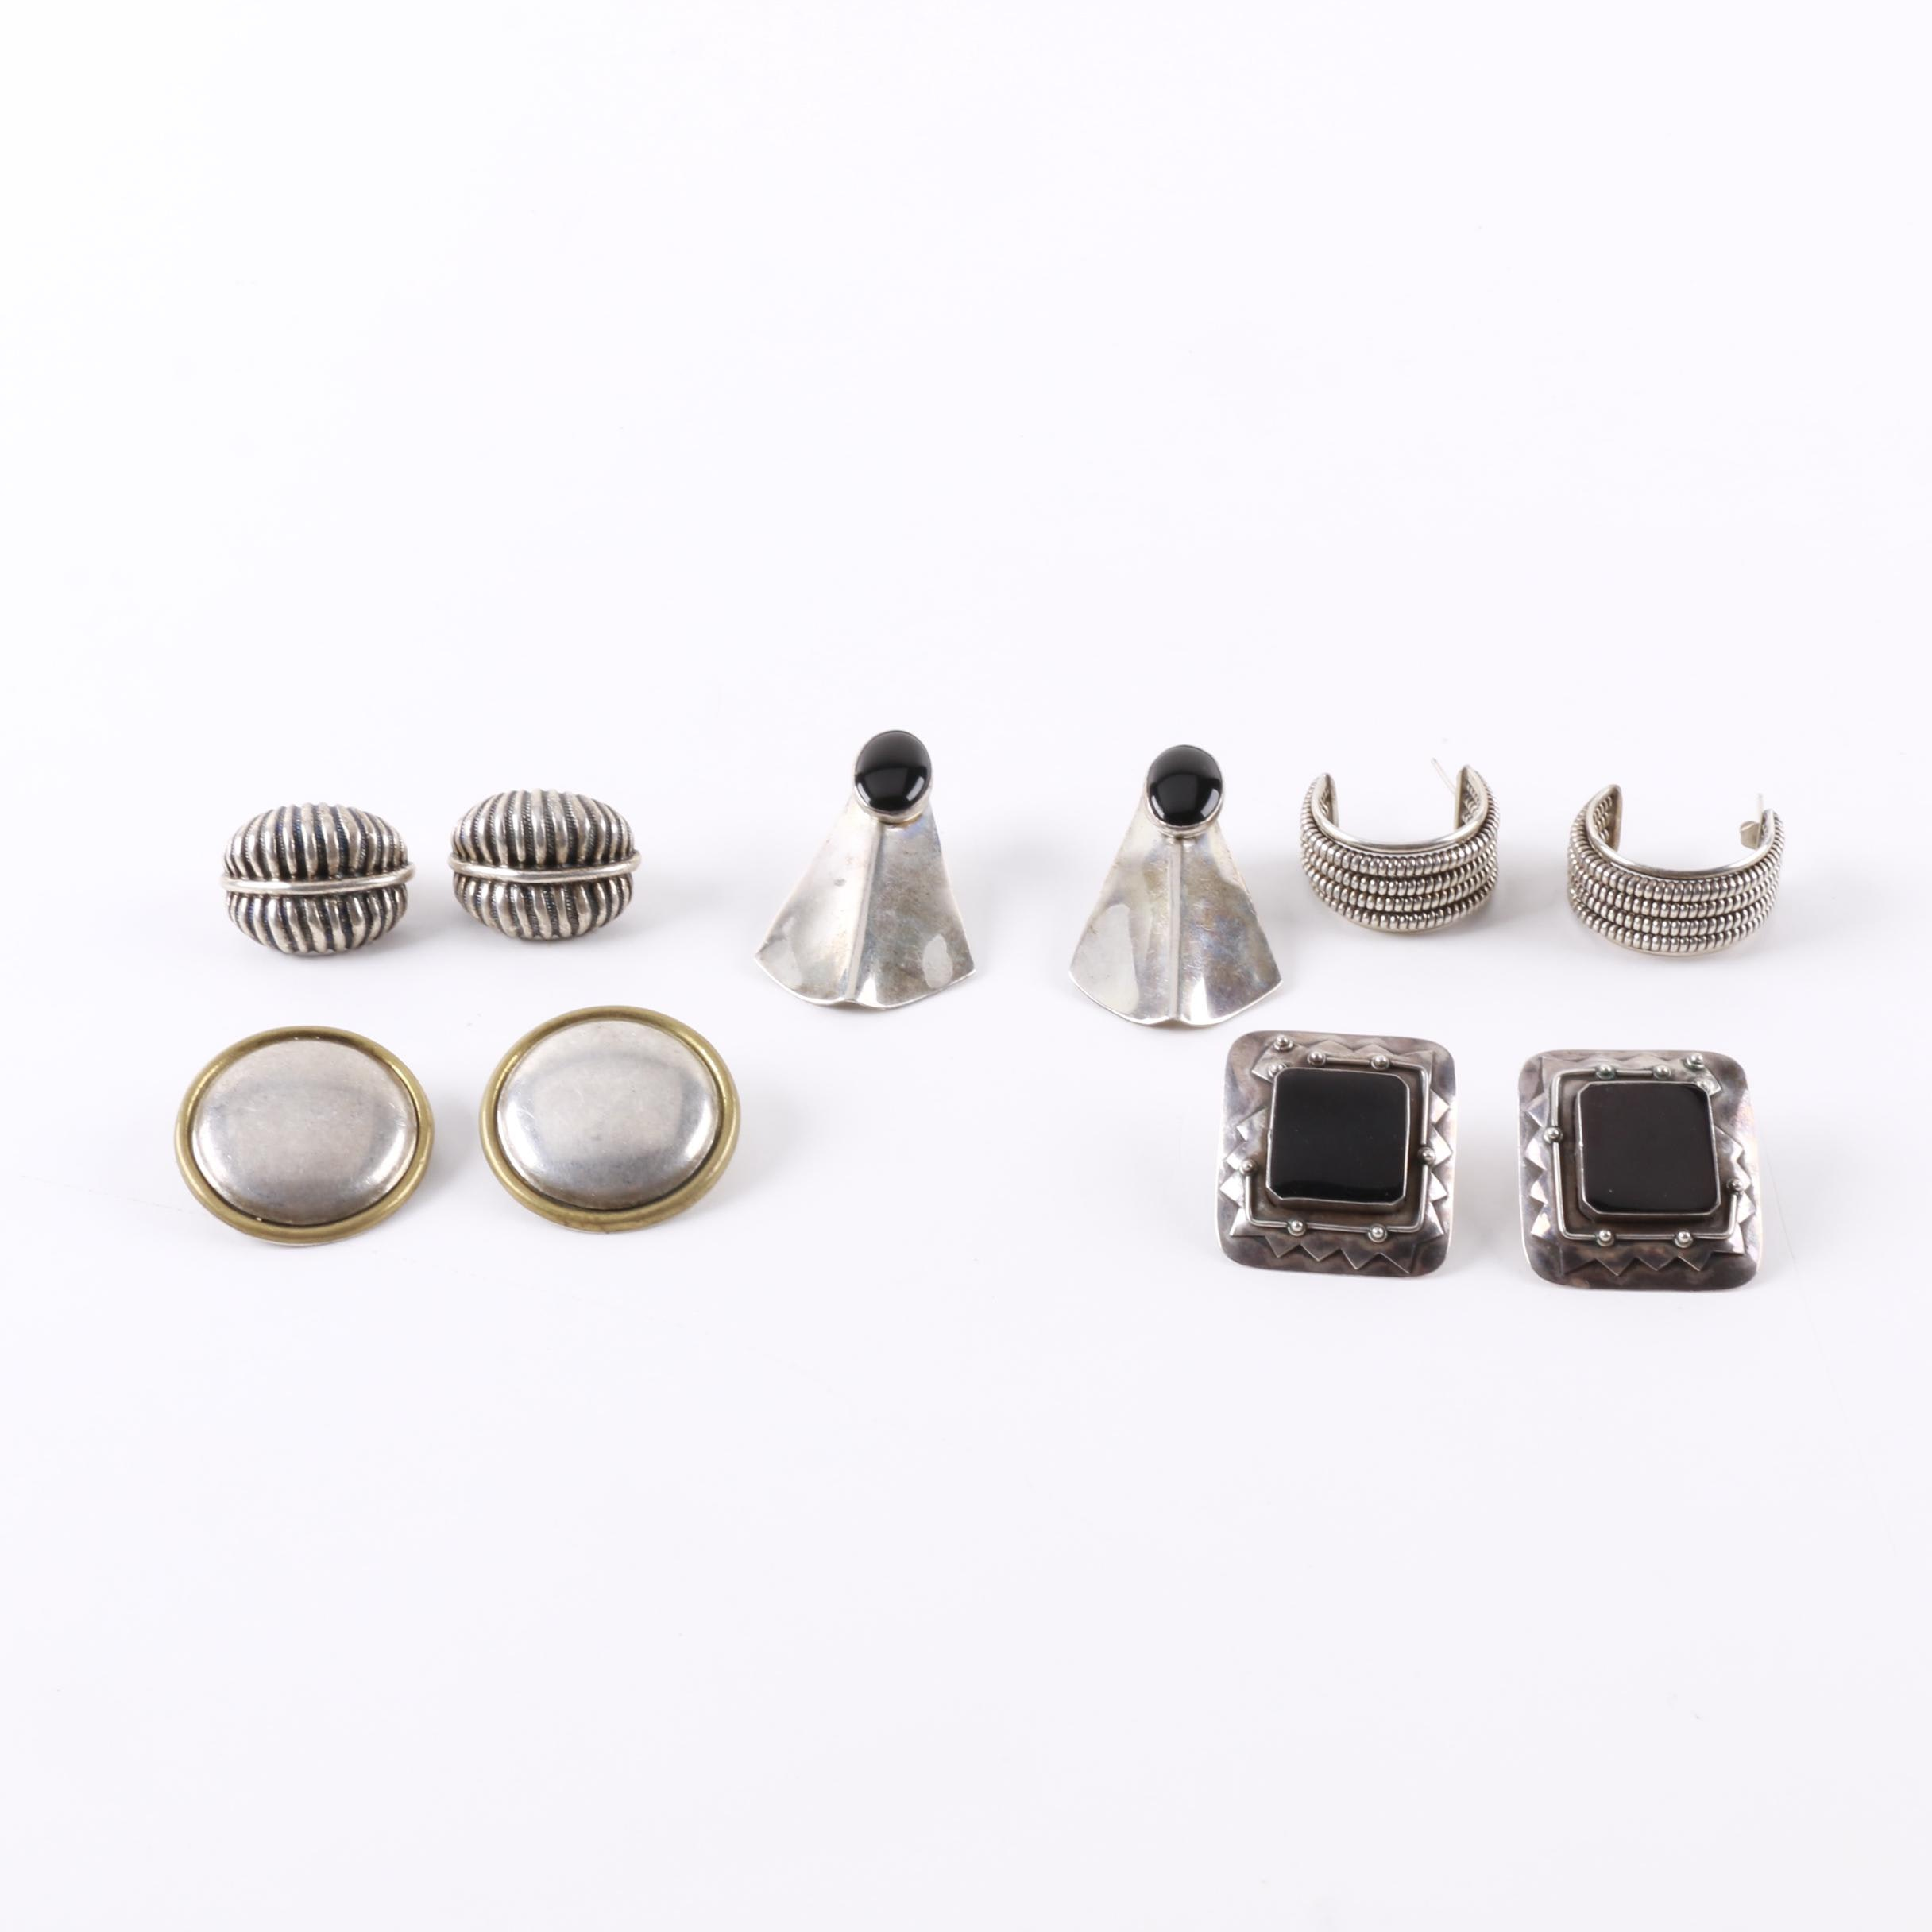 Assortment of Sterling Silver Earrings Including Onyx